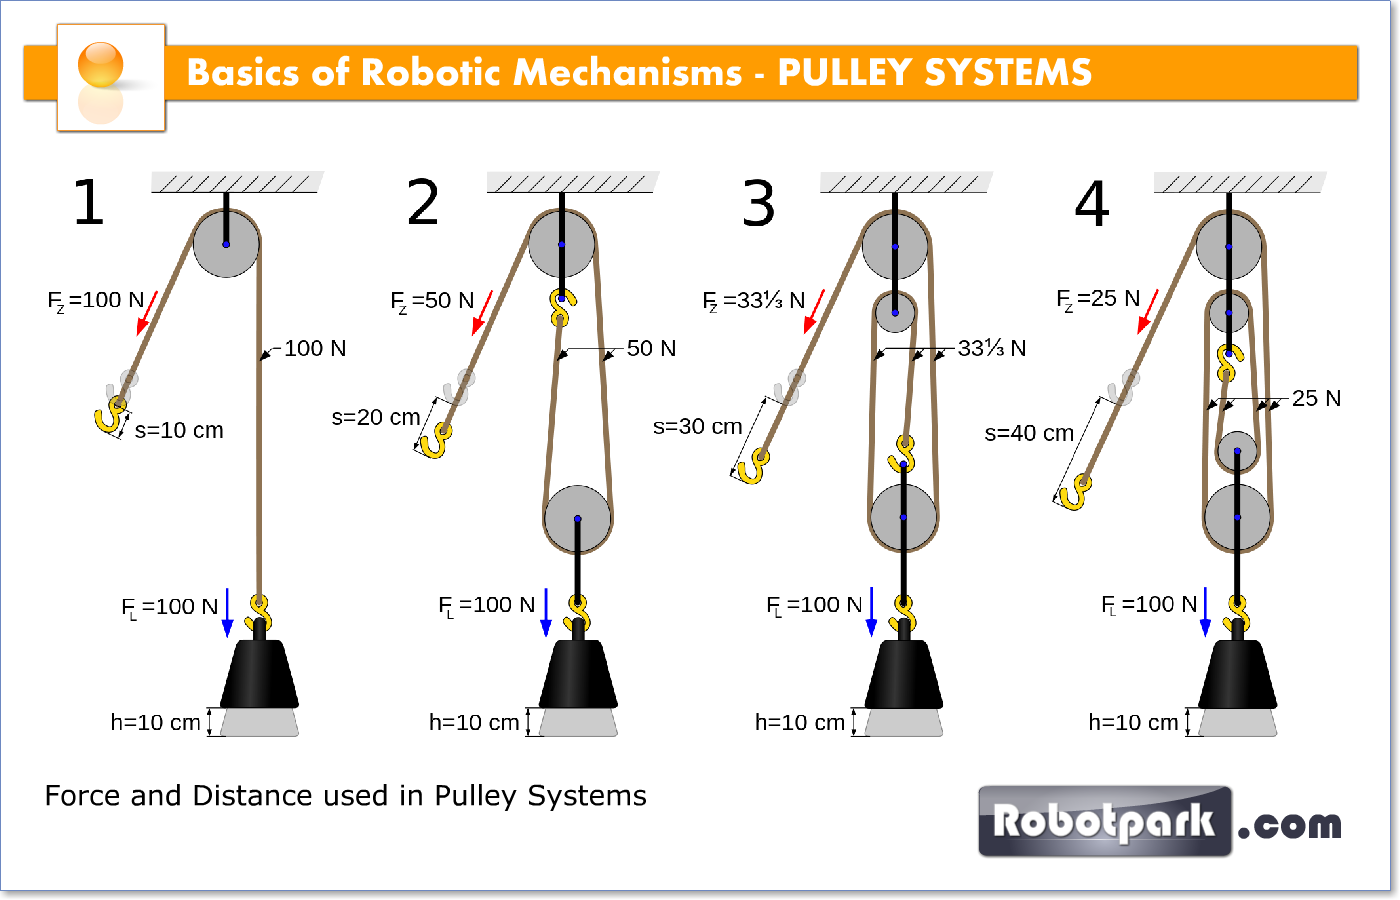 Robotic Mechanisms - Pulley Systems 51005